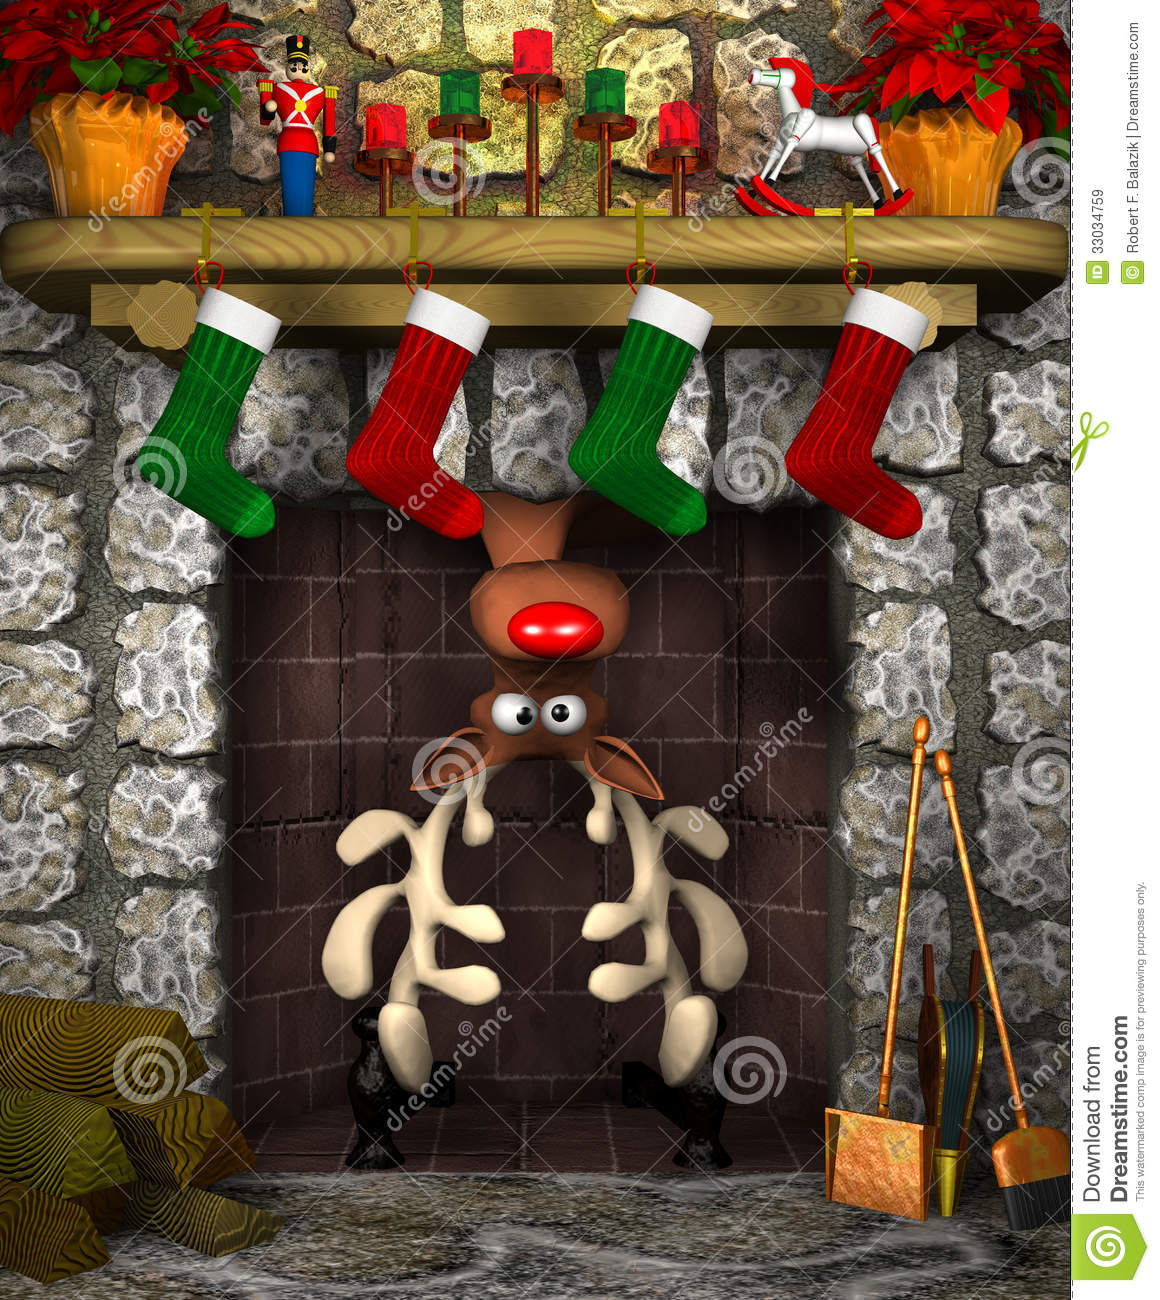 Stuck Reindeer Royalty Free Stock Images Image 33034759